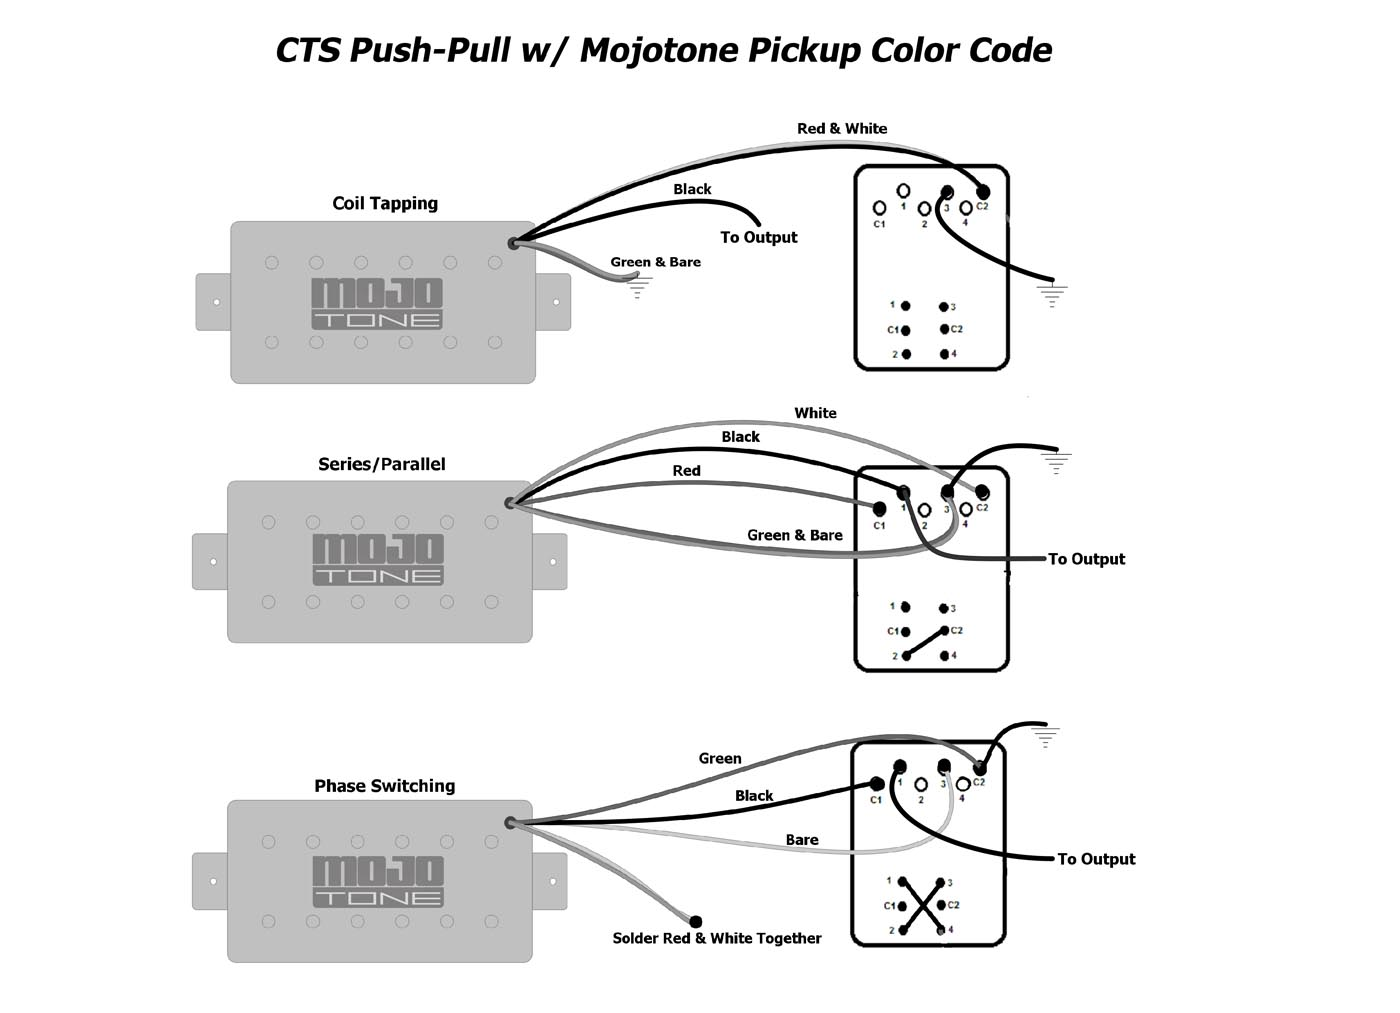 hight resolution of wrg 0704 cts push pull pot wiring diagram 2006 cadillac cts wiring diagram cts push